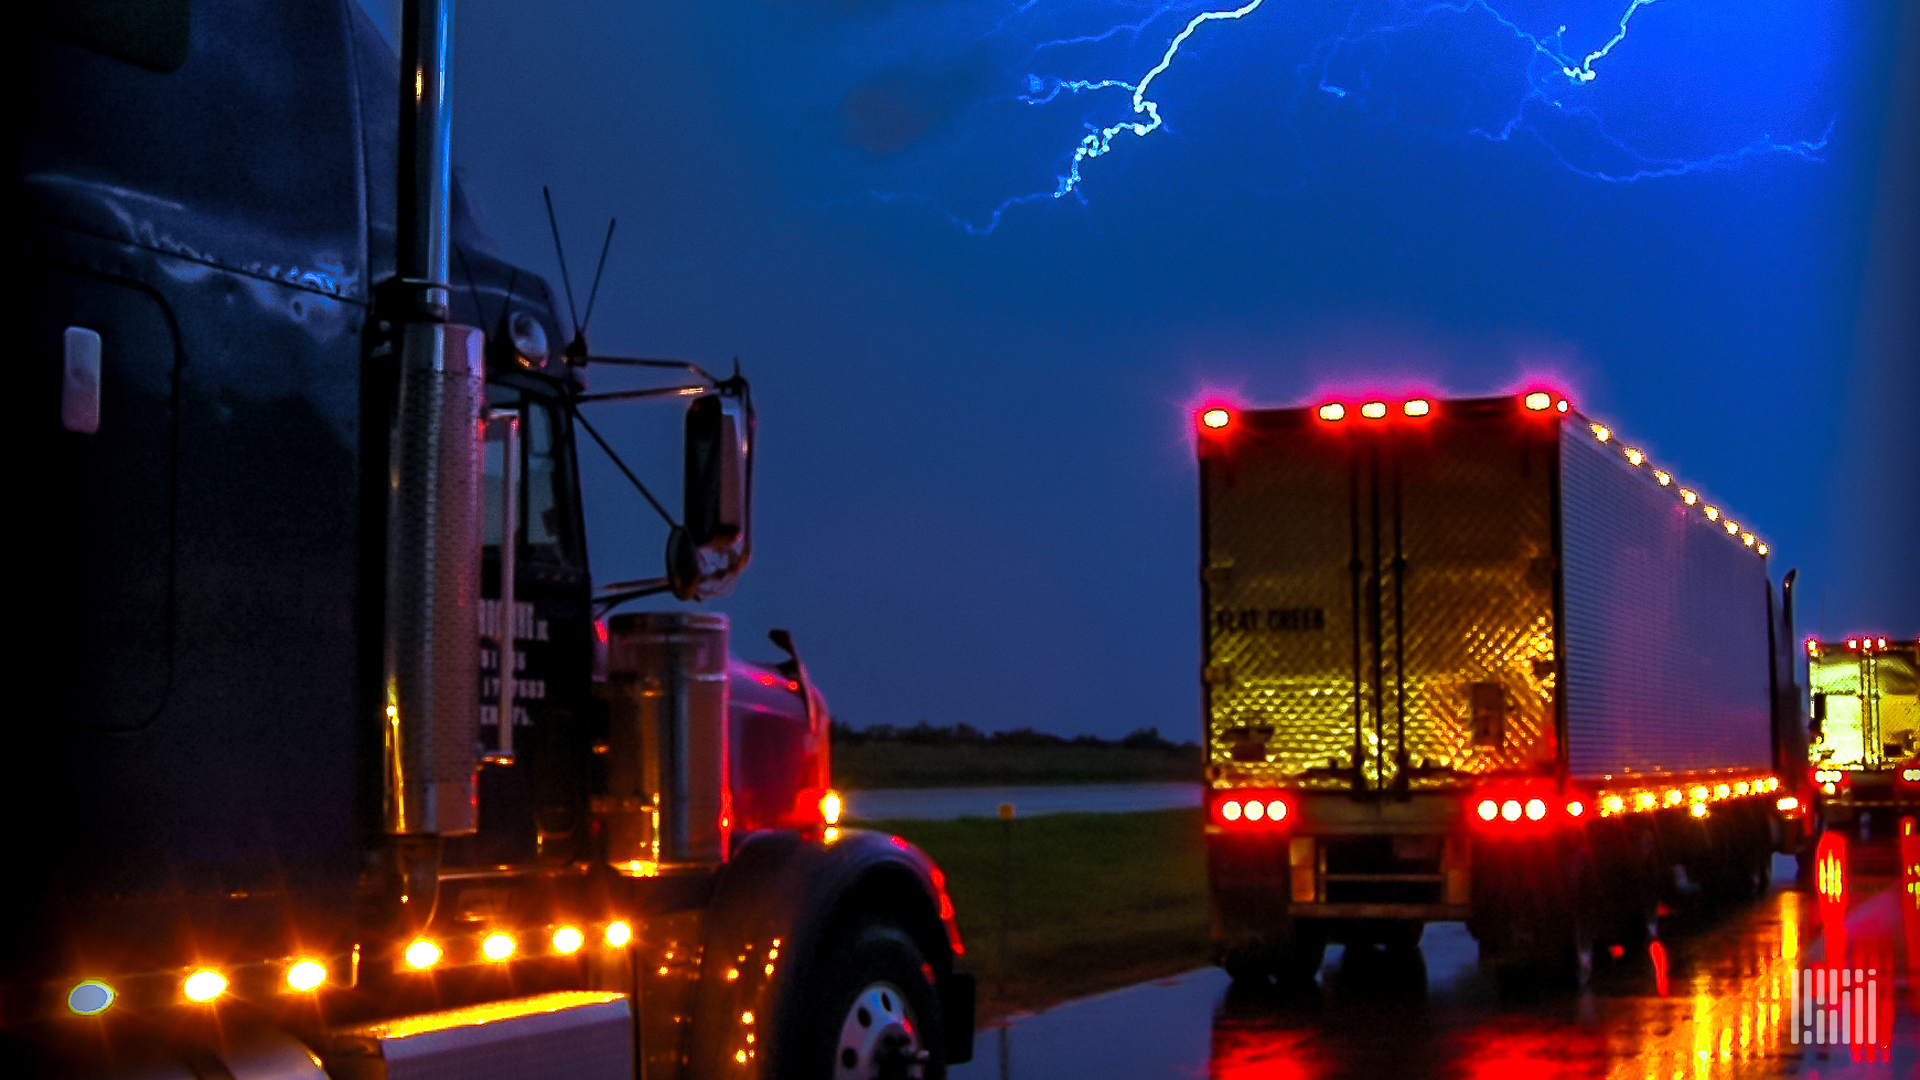 Tractor-trailers heading down wet highway with lighting across a night sky.